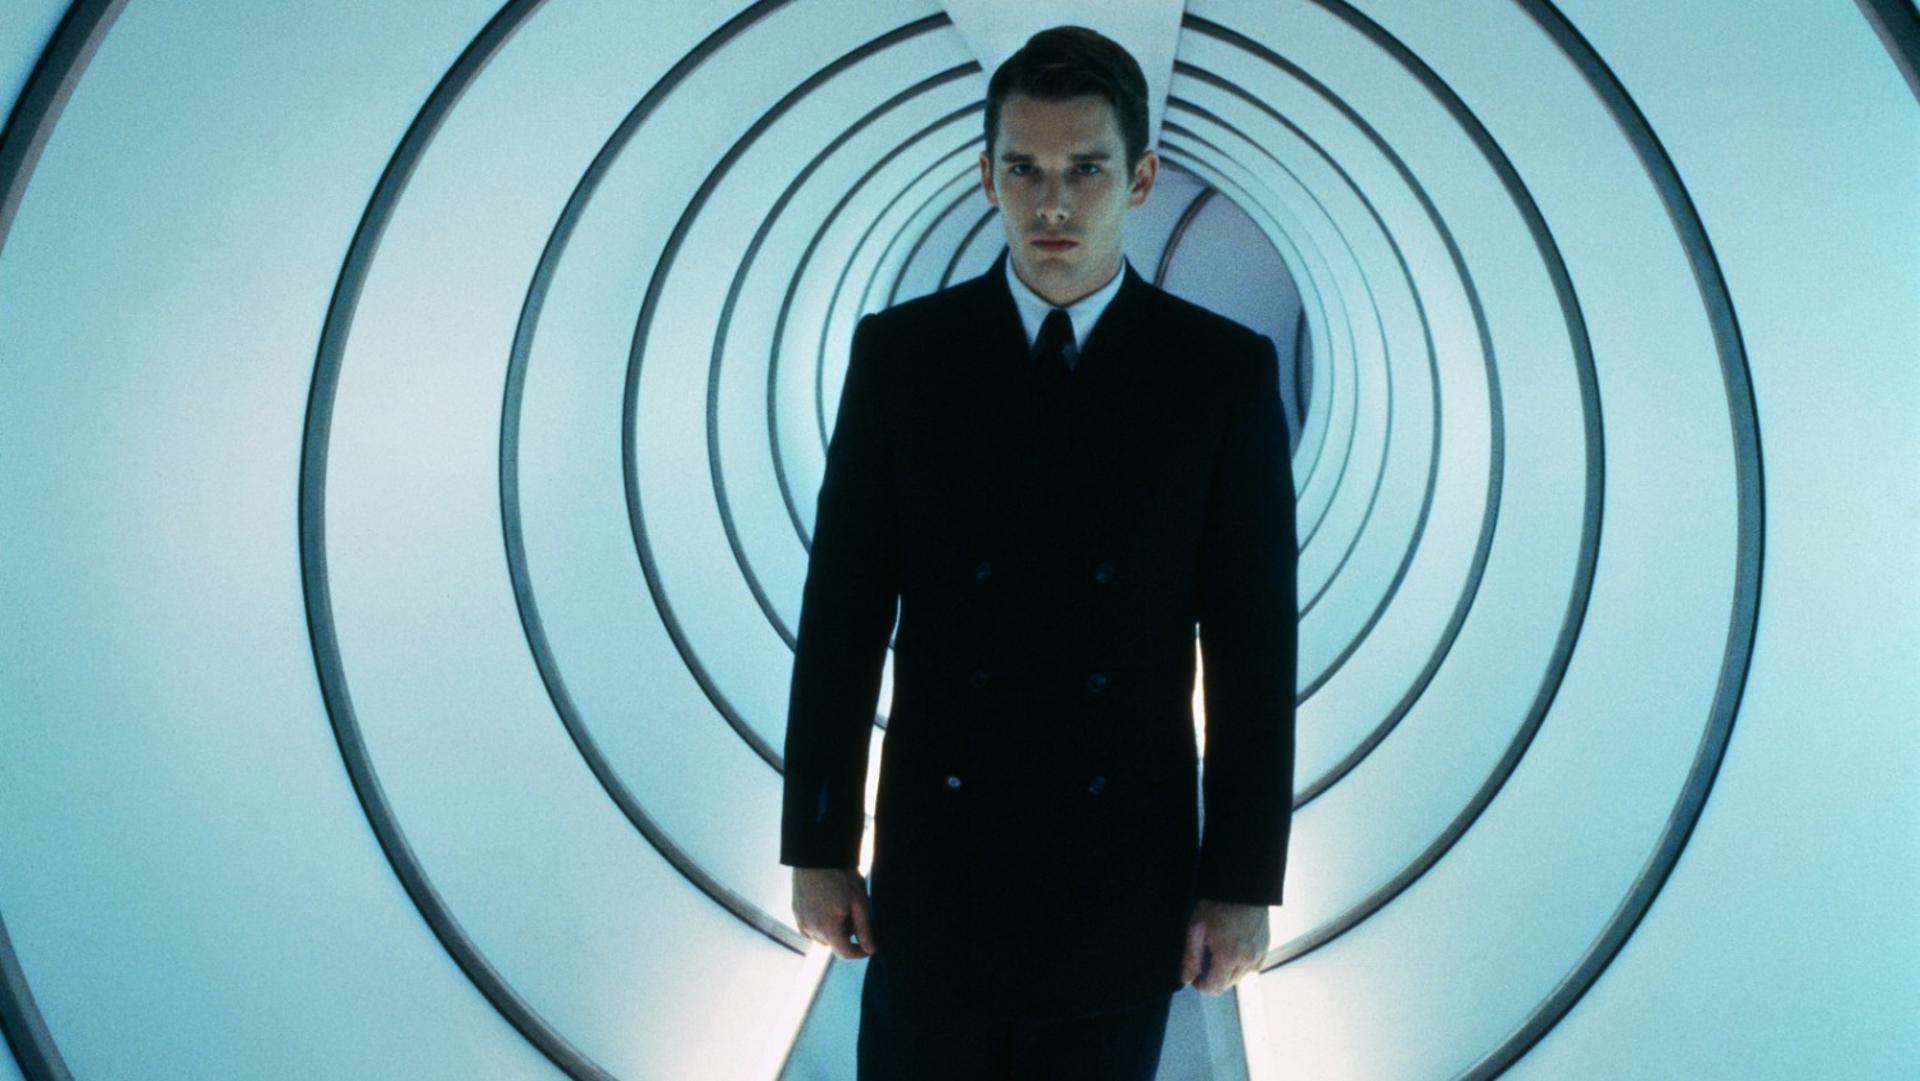 gattaca a film by andrew niccol Directed by andrew niccol with ethan hawke, uma thurman, jude law, gore vidal a genetically inferior man assumes the identity of a superior one in order to pursue his lifelong dream of space travel.